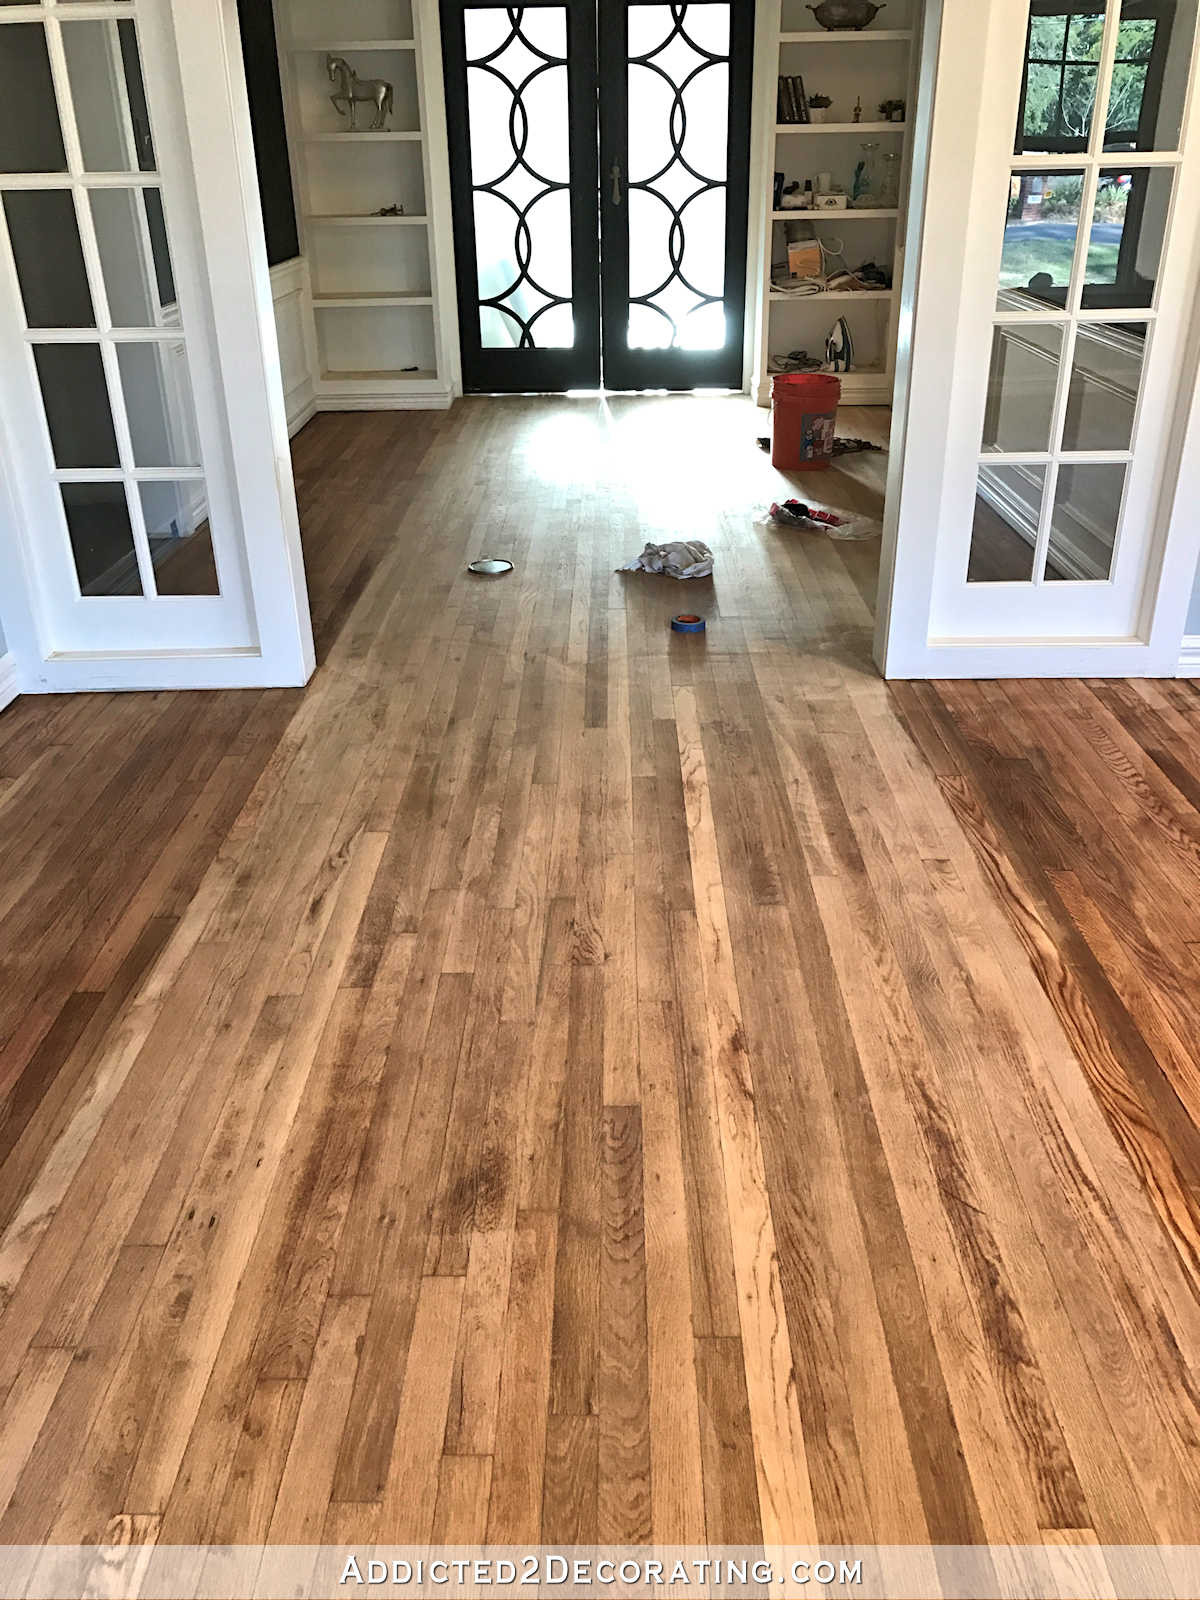 hardwood floor sanding machine of how to refinish a hardwood floor floor pertaining to how to refinish a hardwood floor adventures in staining my red oak hardwood floors products